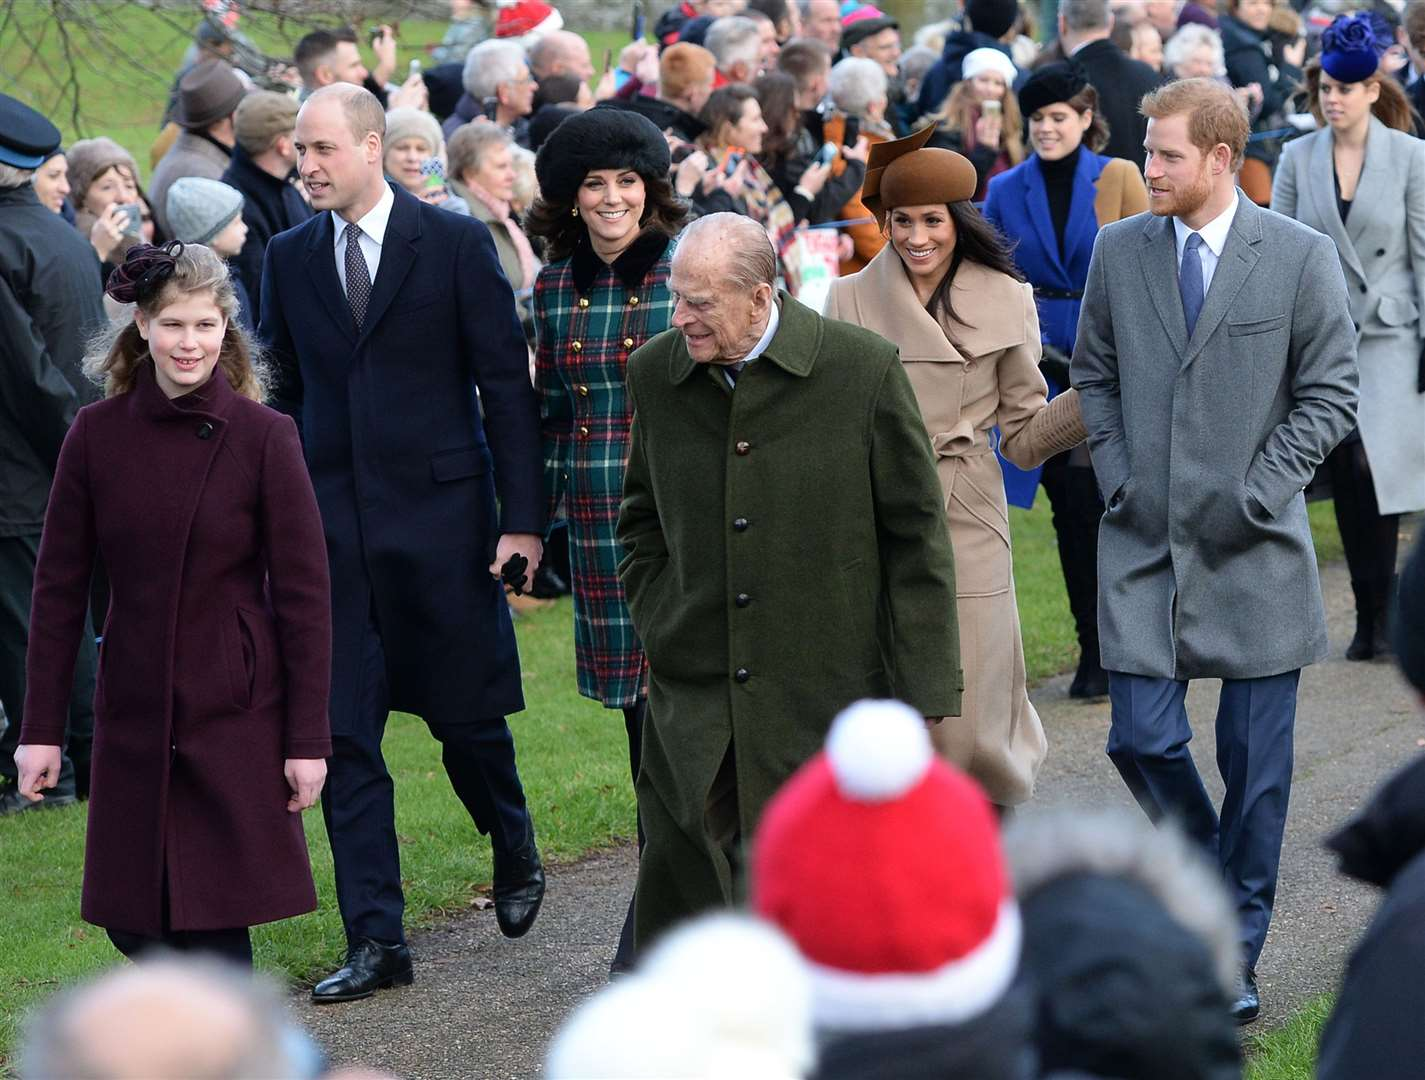 Lady Louise Windsor, the Duke of Edinburgh, the Cambridges and Sussexes on Christmas Day in 2017 (Joe Giddens/PA)